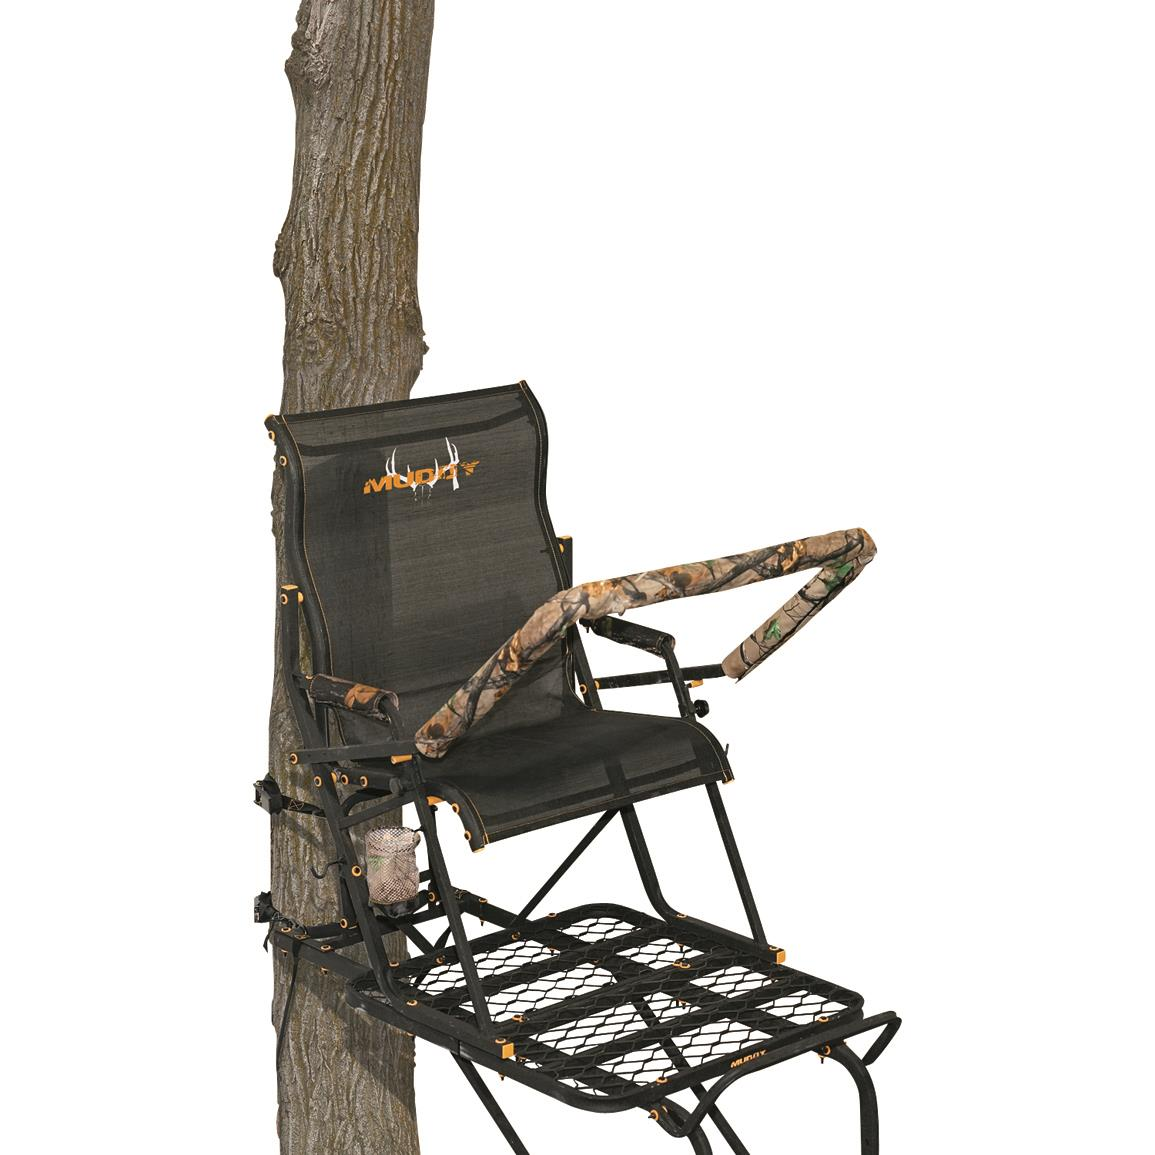 Muddy Boss Hawg 1.5-Man Ladder Tree Stand